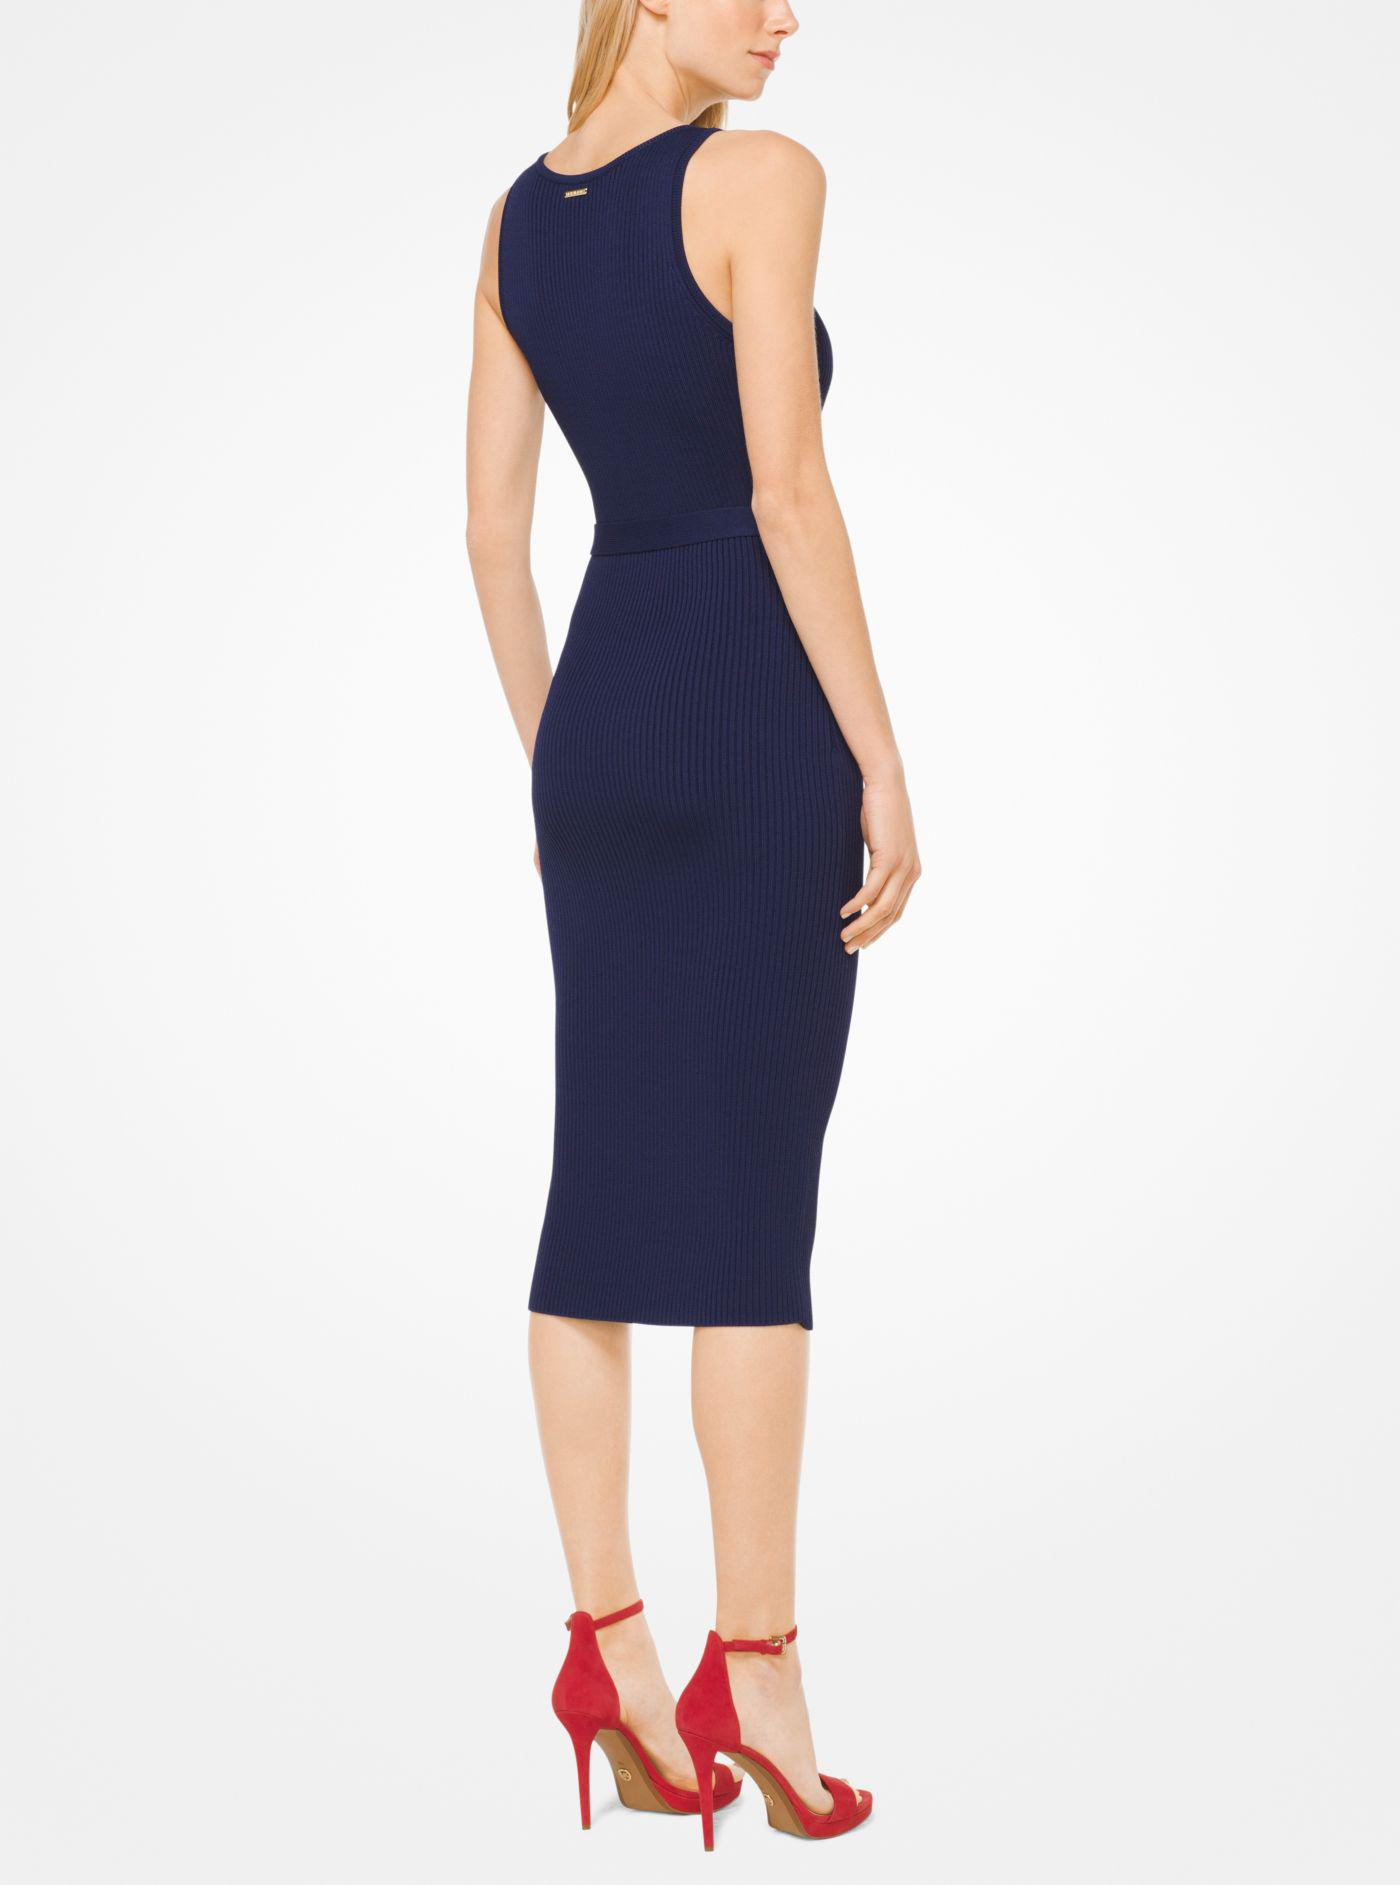 7c8bc6f2cfe Michael Kors Belted Ribbed Knit Dress in Blue - Lyst